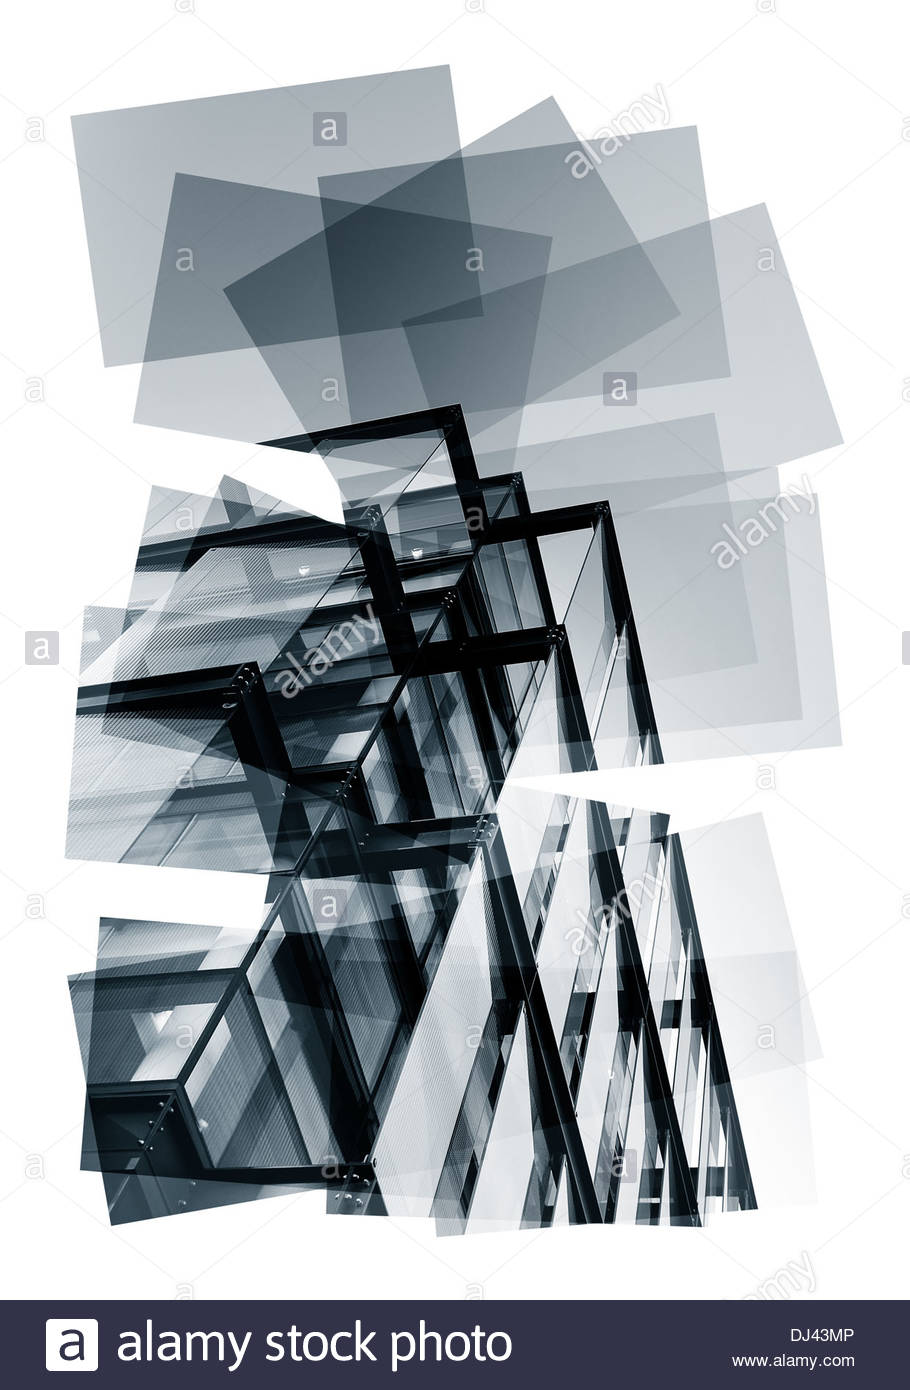 modern architecture abstract - Stock Image